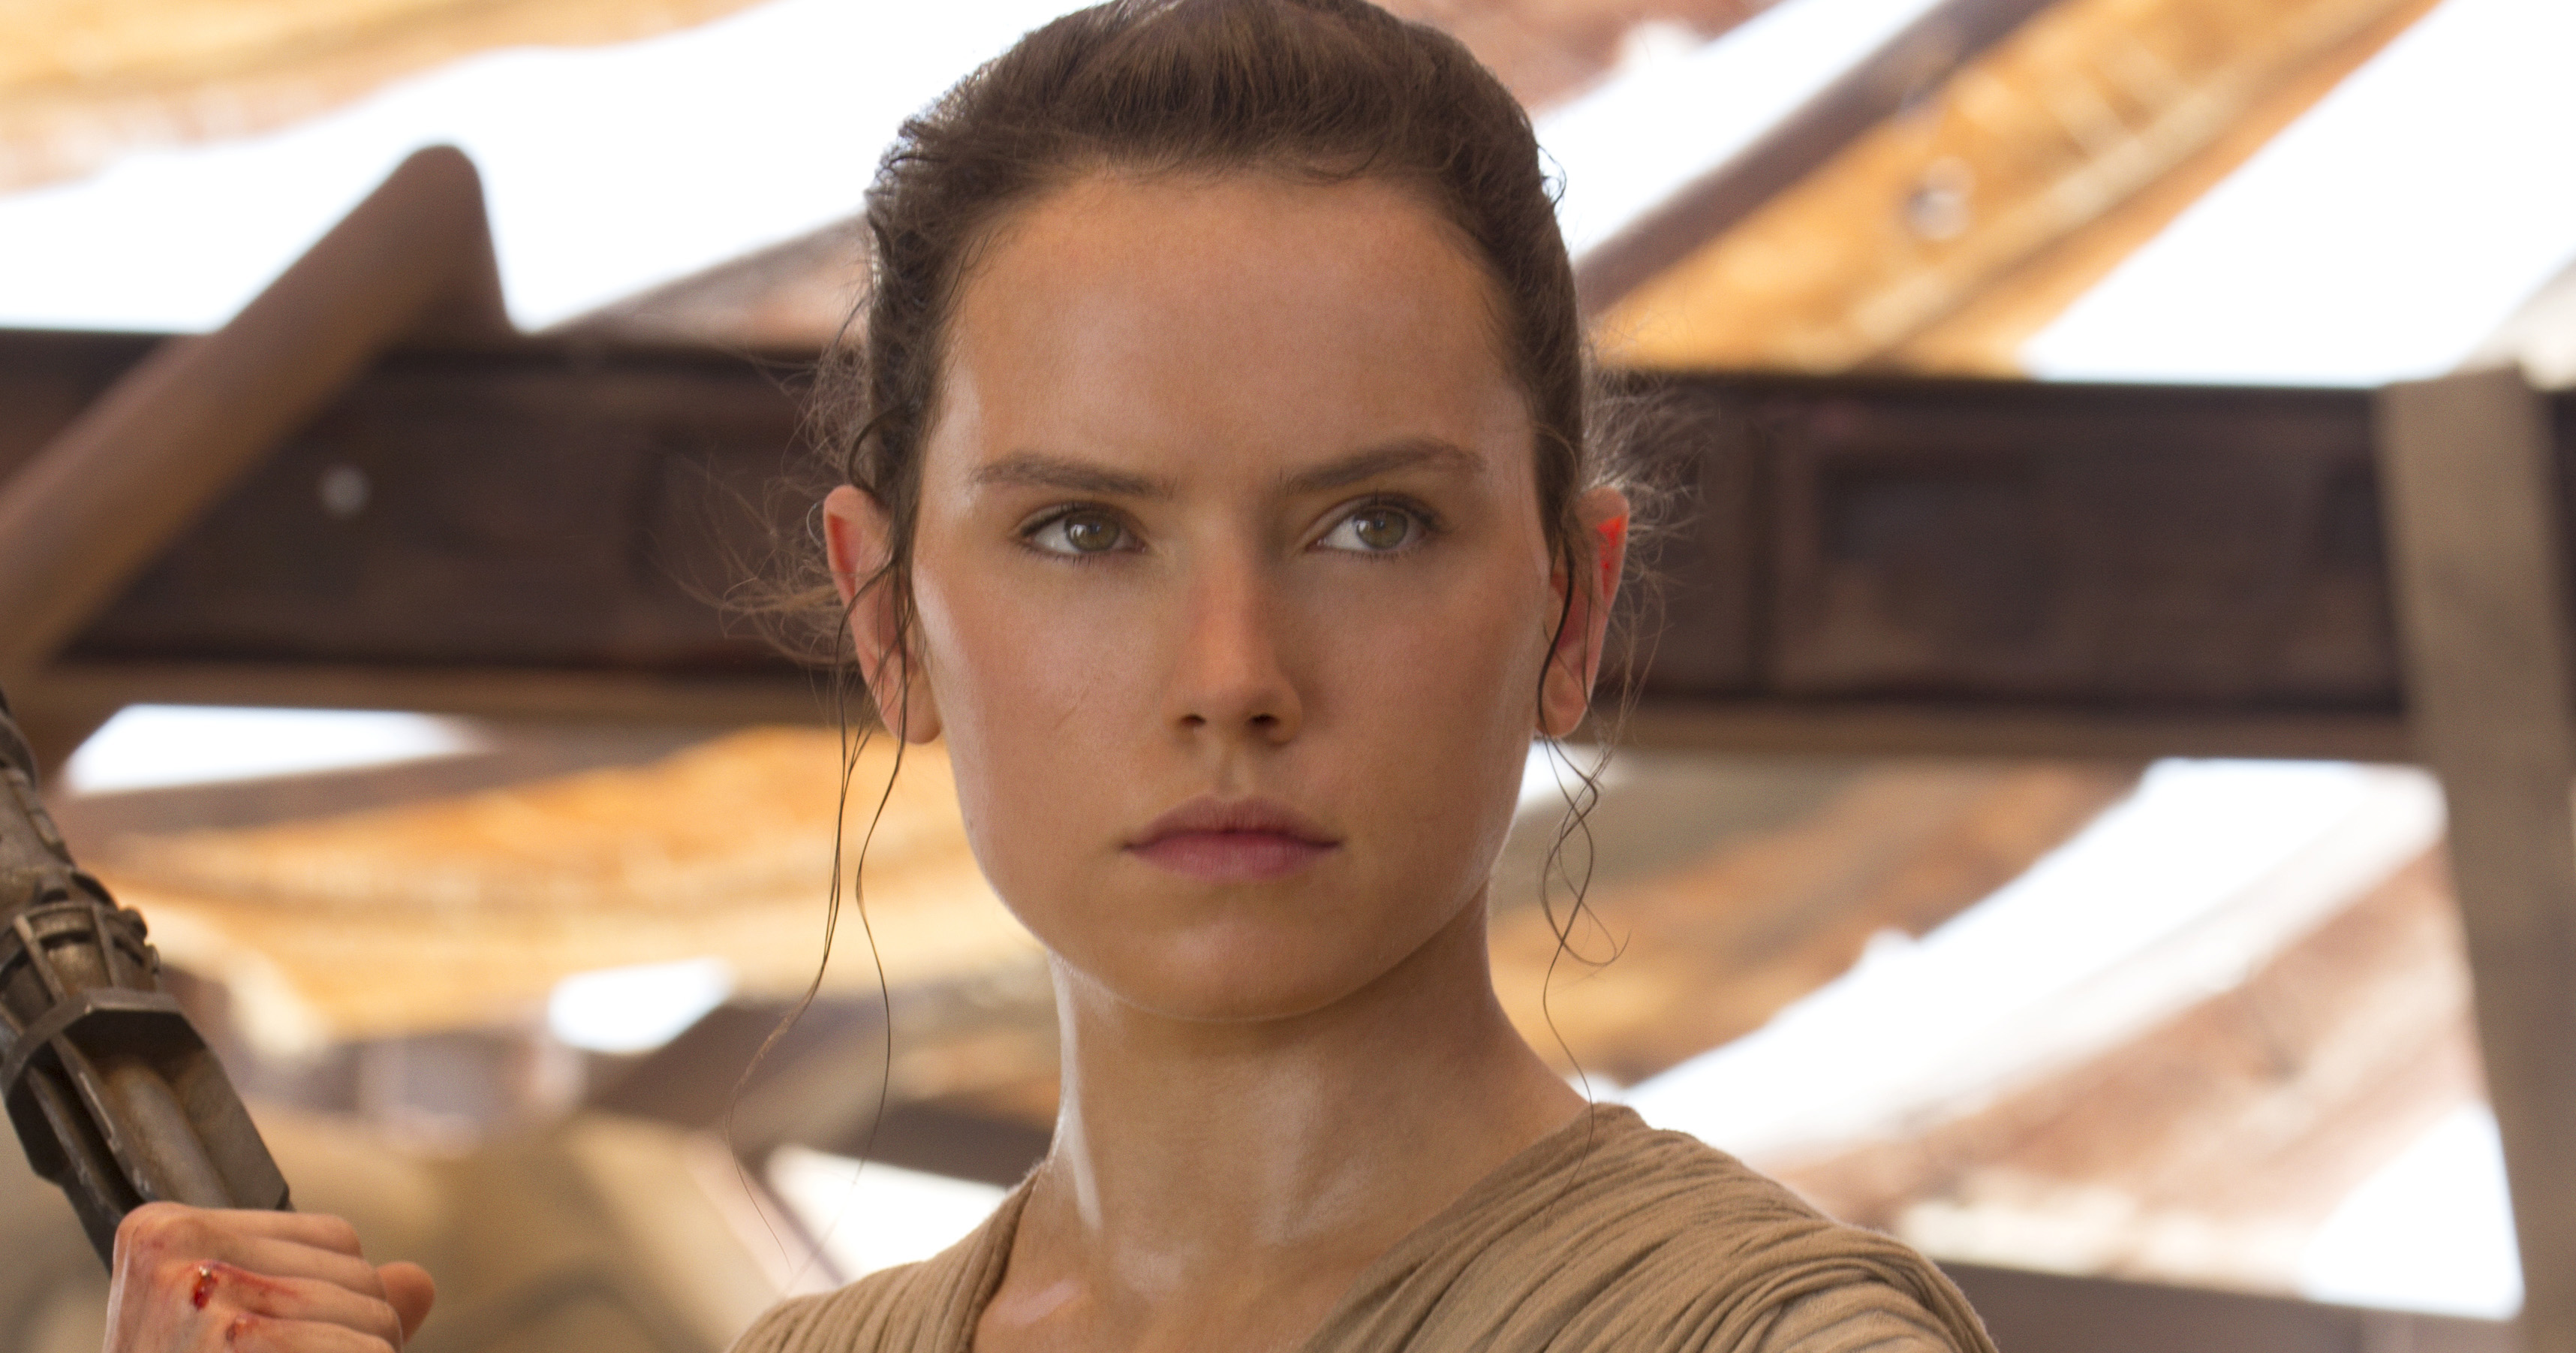 Daisy Ridley as Rey in Star Wars: The Force Awakens.